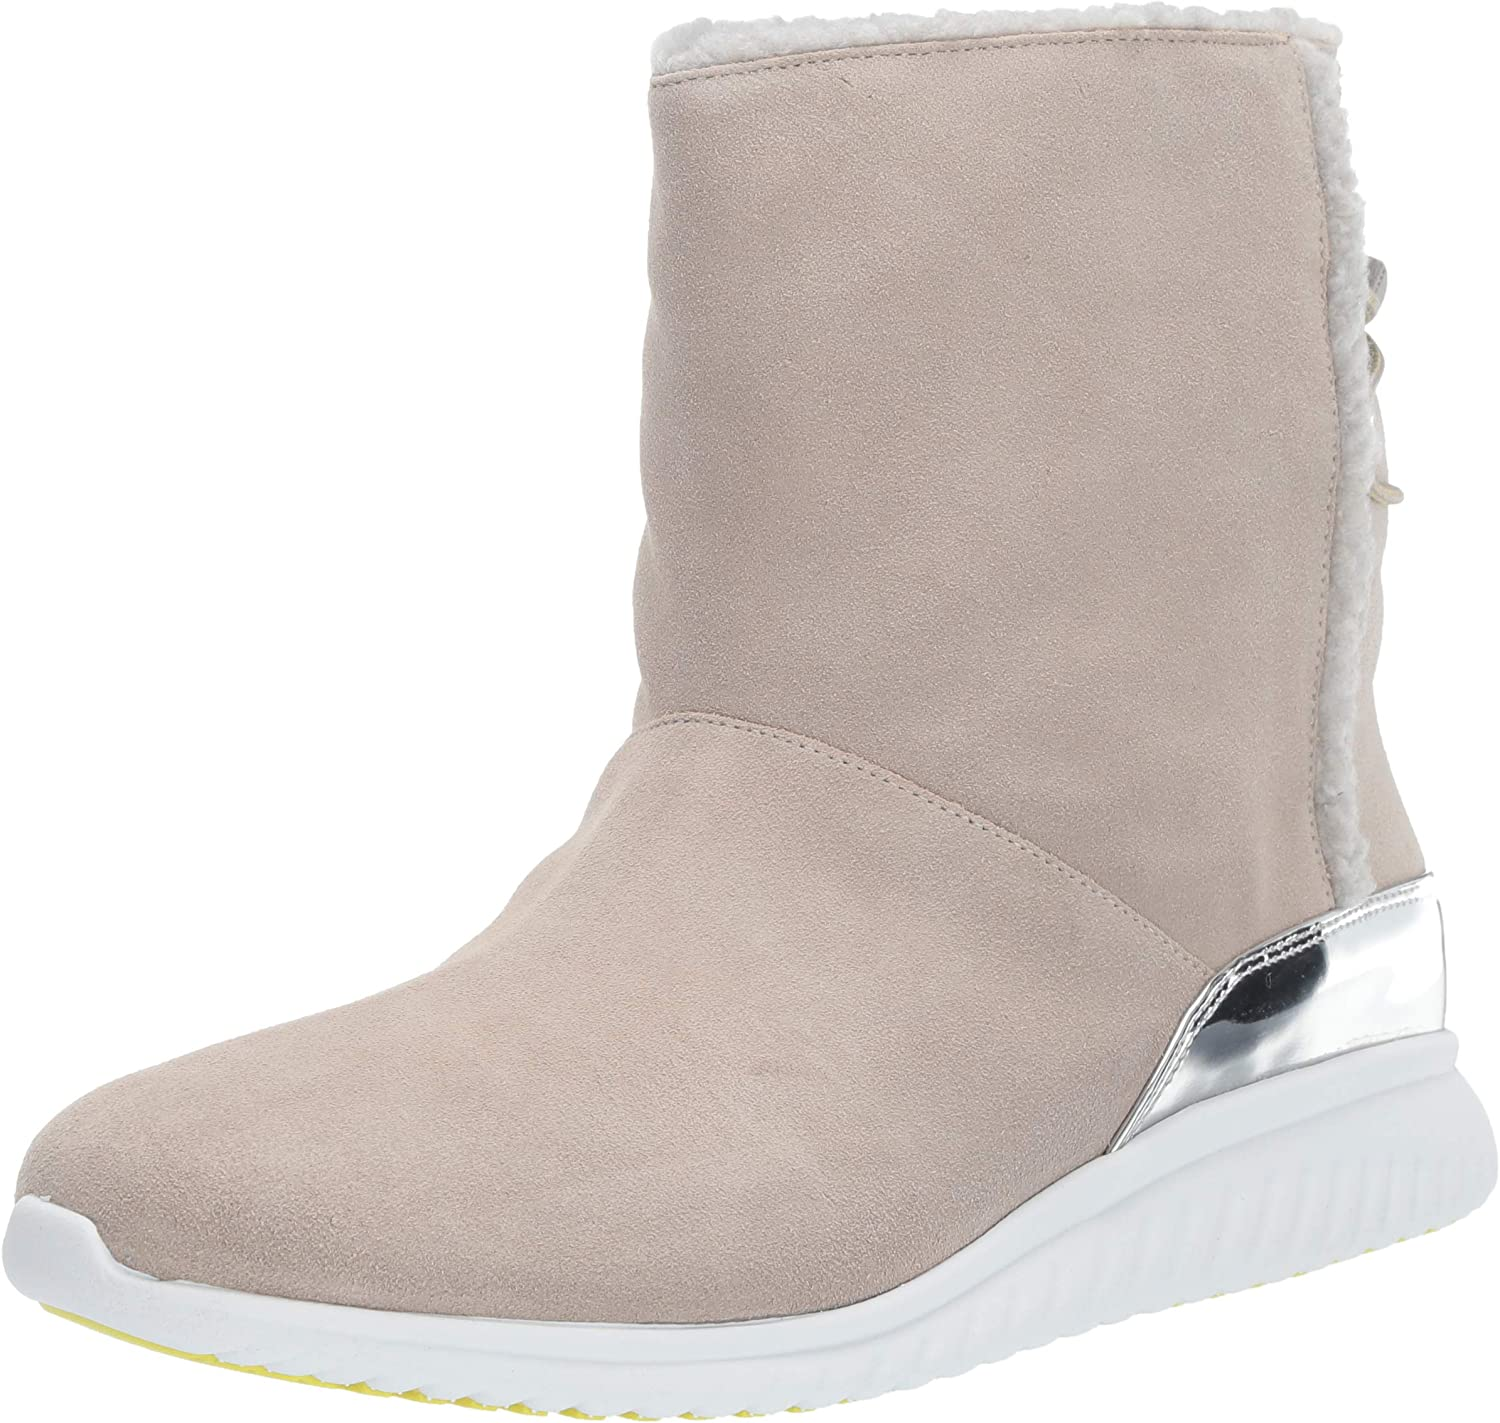 Cole Haan Womens Studiogrand Slip-on Boot Waterproof Ankle Boot